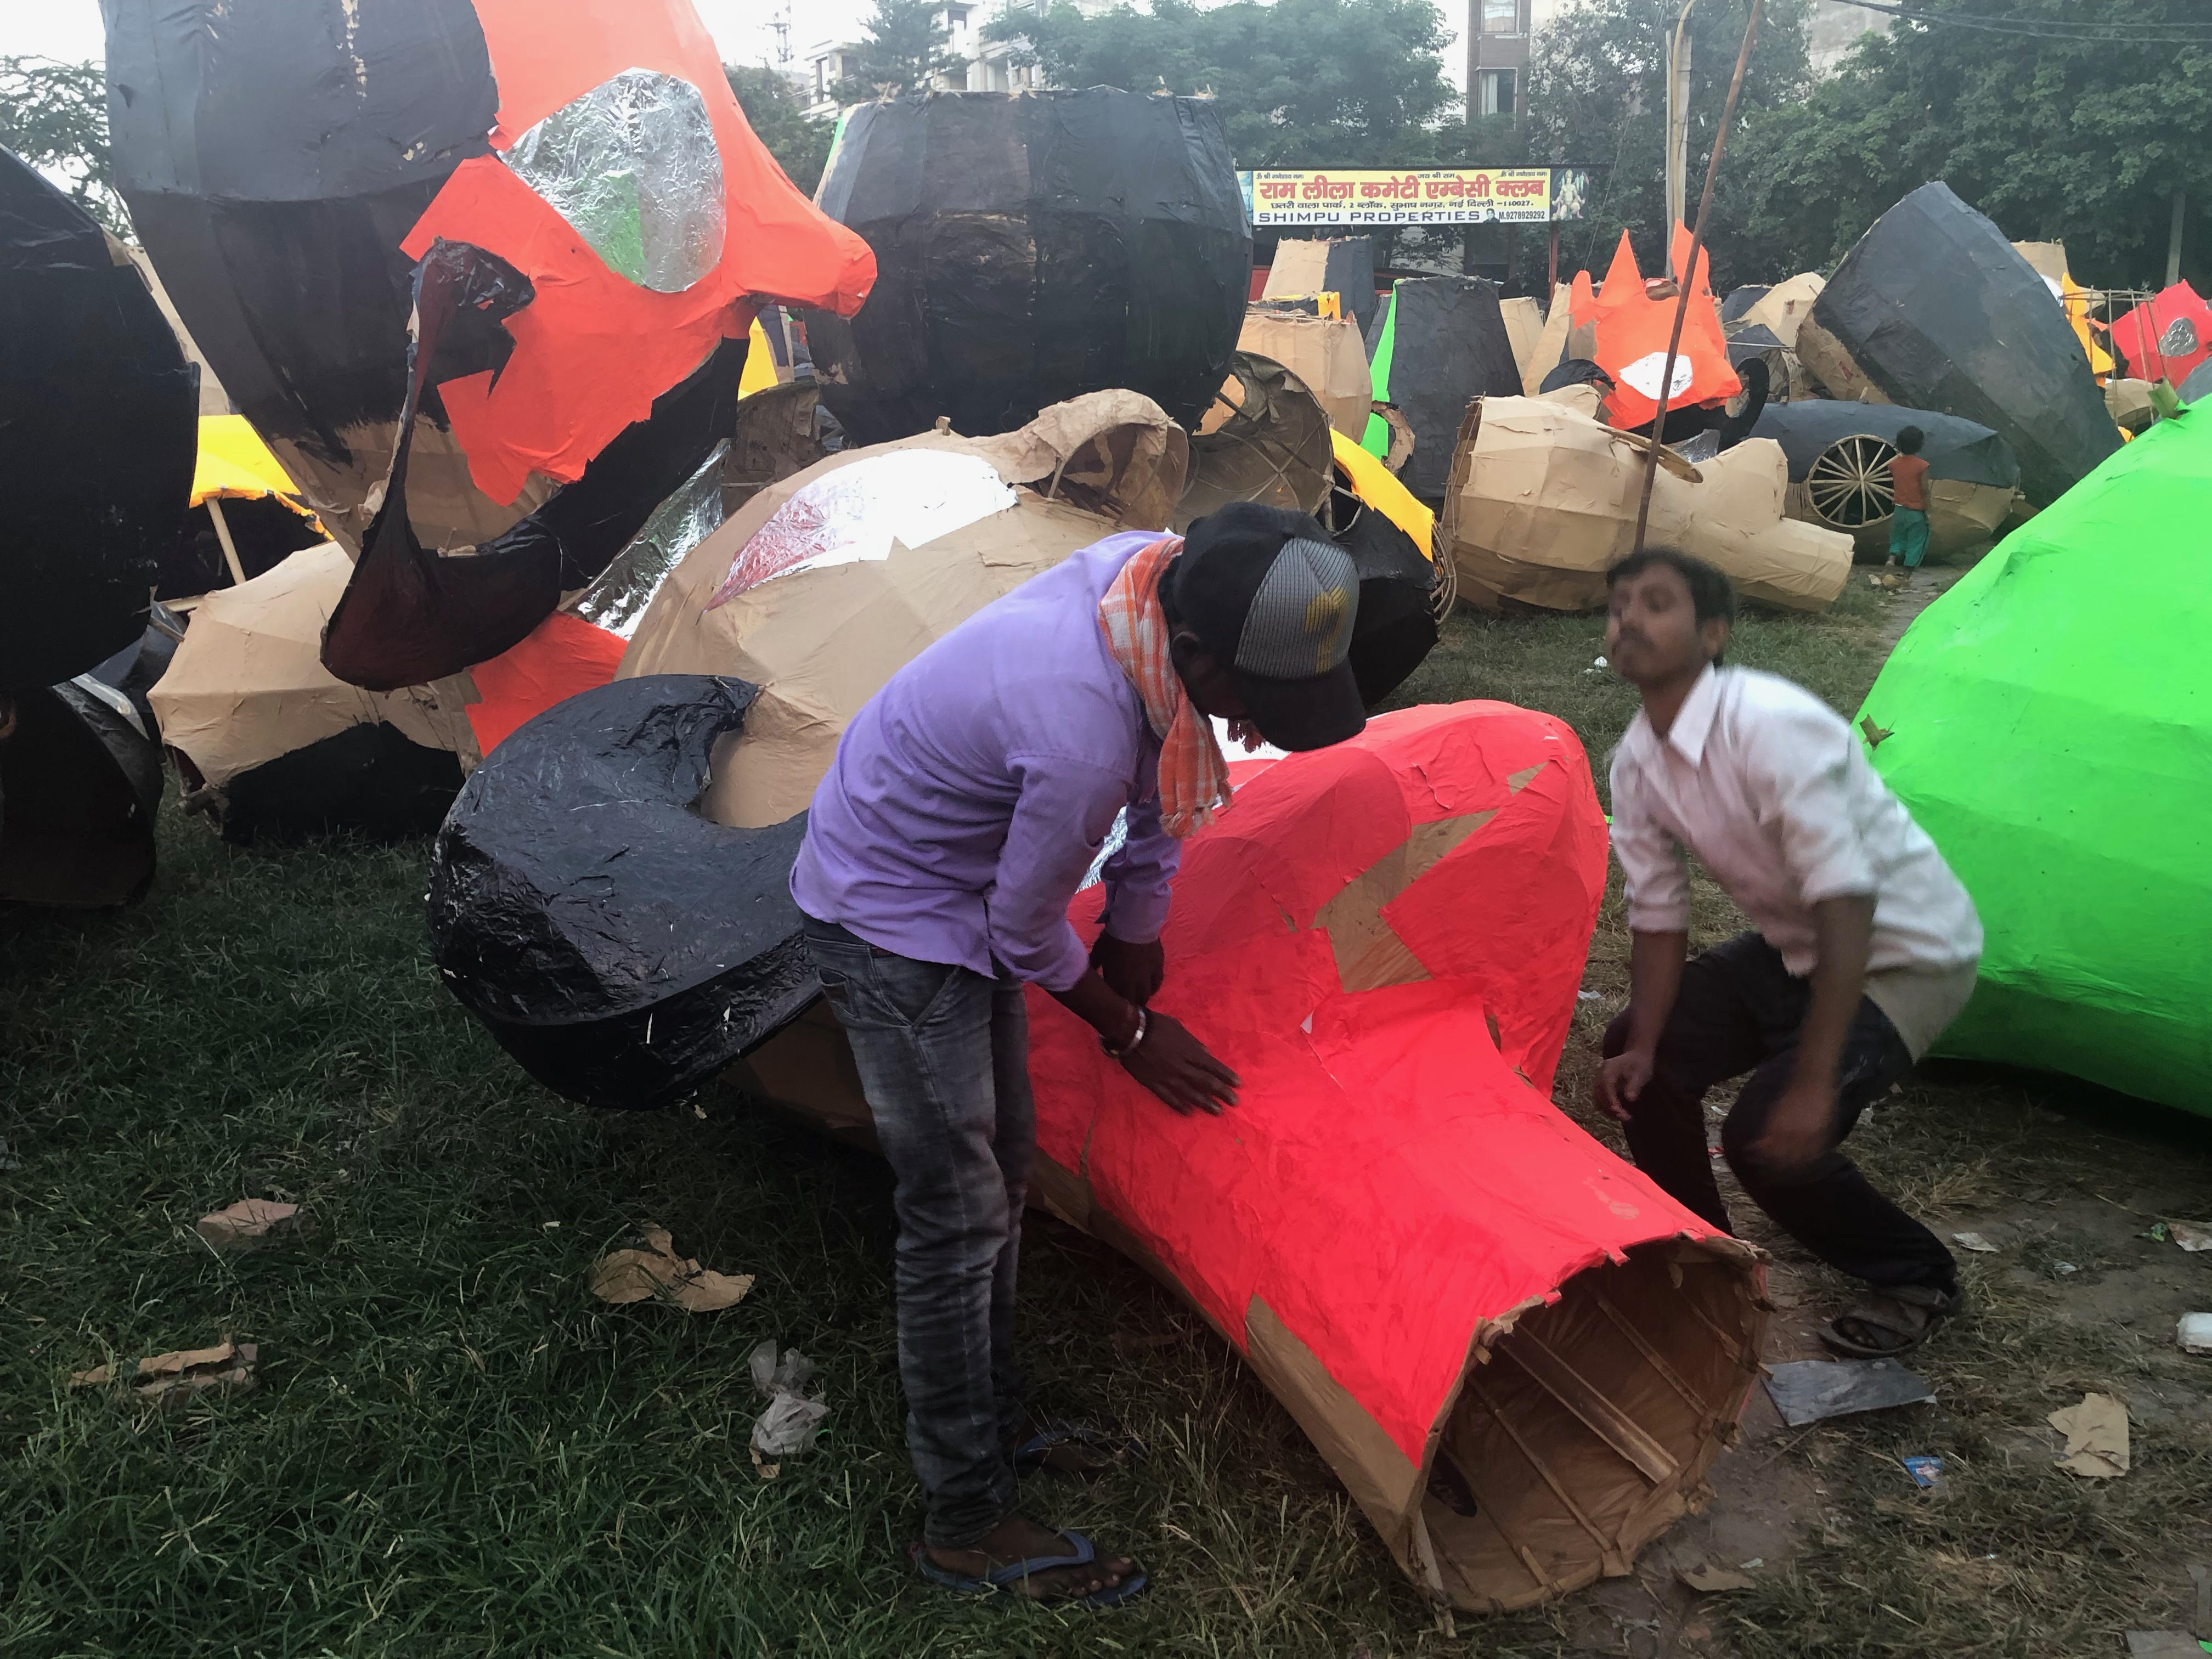 Workers adding colour paper to an effigy